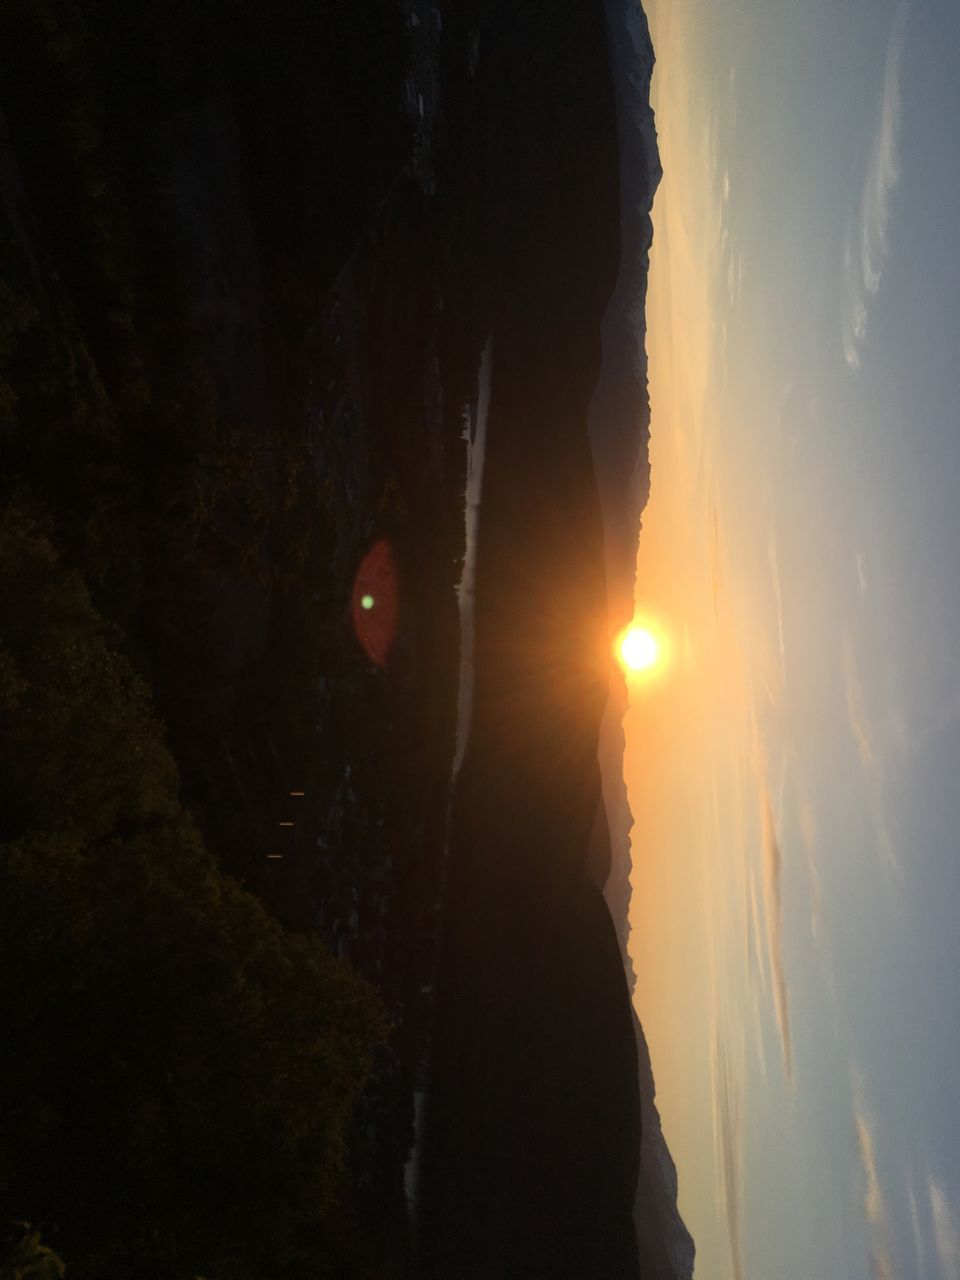 sun, sunset, nature, beauty in nature, tranquility, tranquil scene, scenics, sunlight, outdoors, landscape, sky, no people, day